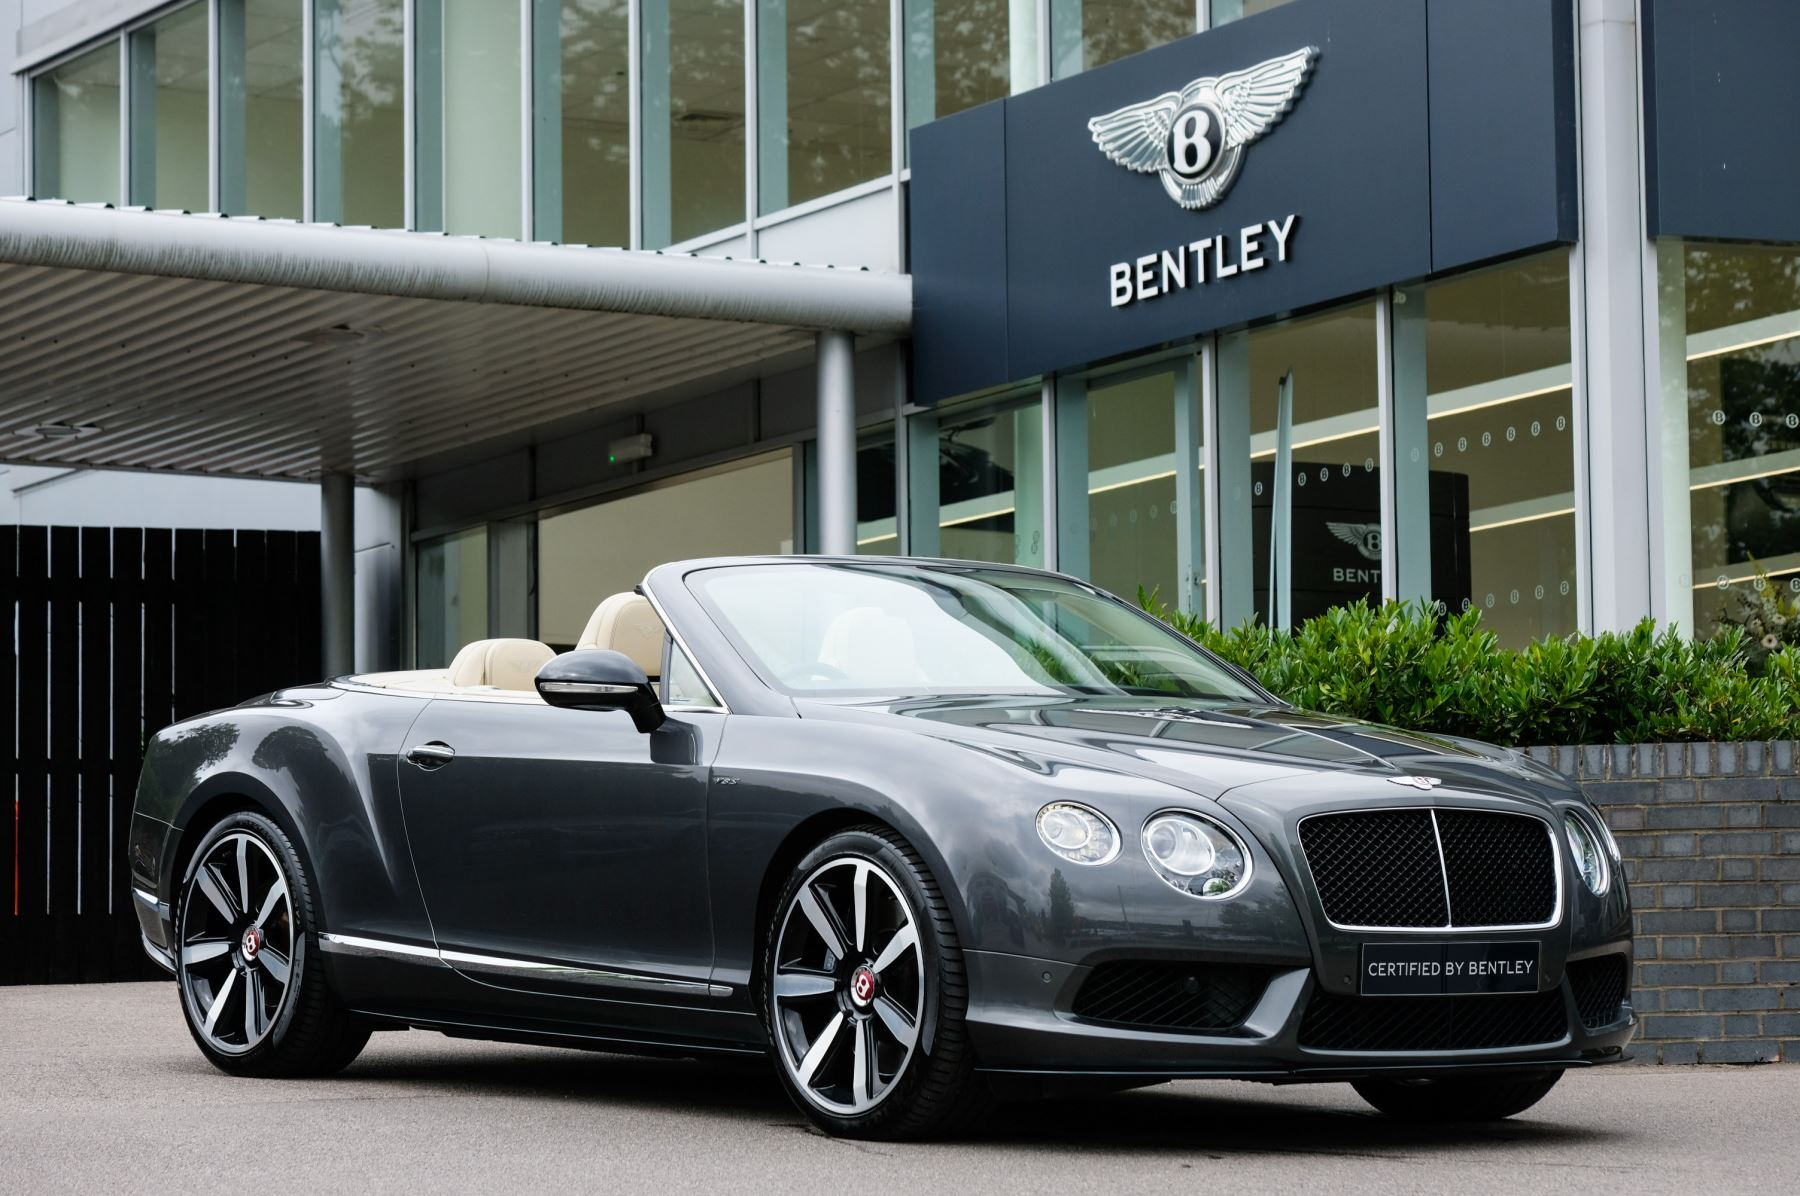 Bentley Continental GTC 4.0 V8 S - Ventilated Front Seats with Massage Function Automatic 2 door Convertible